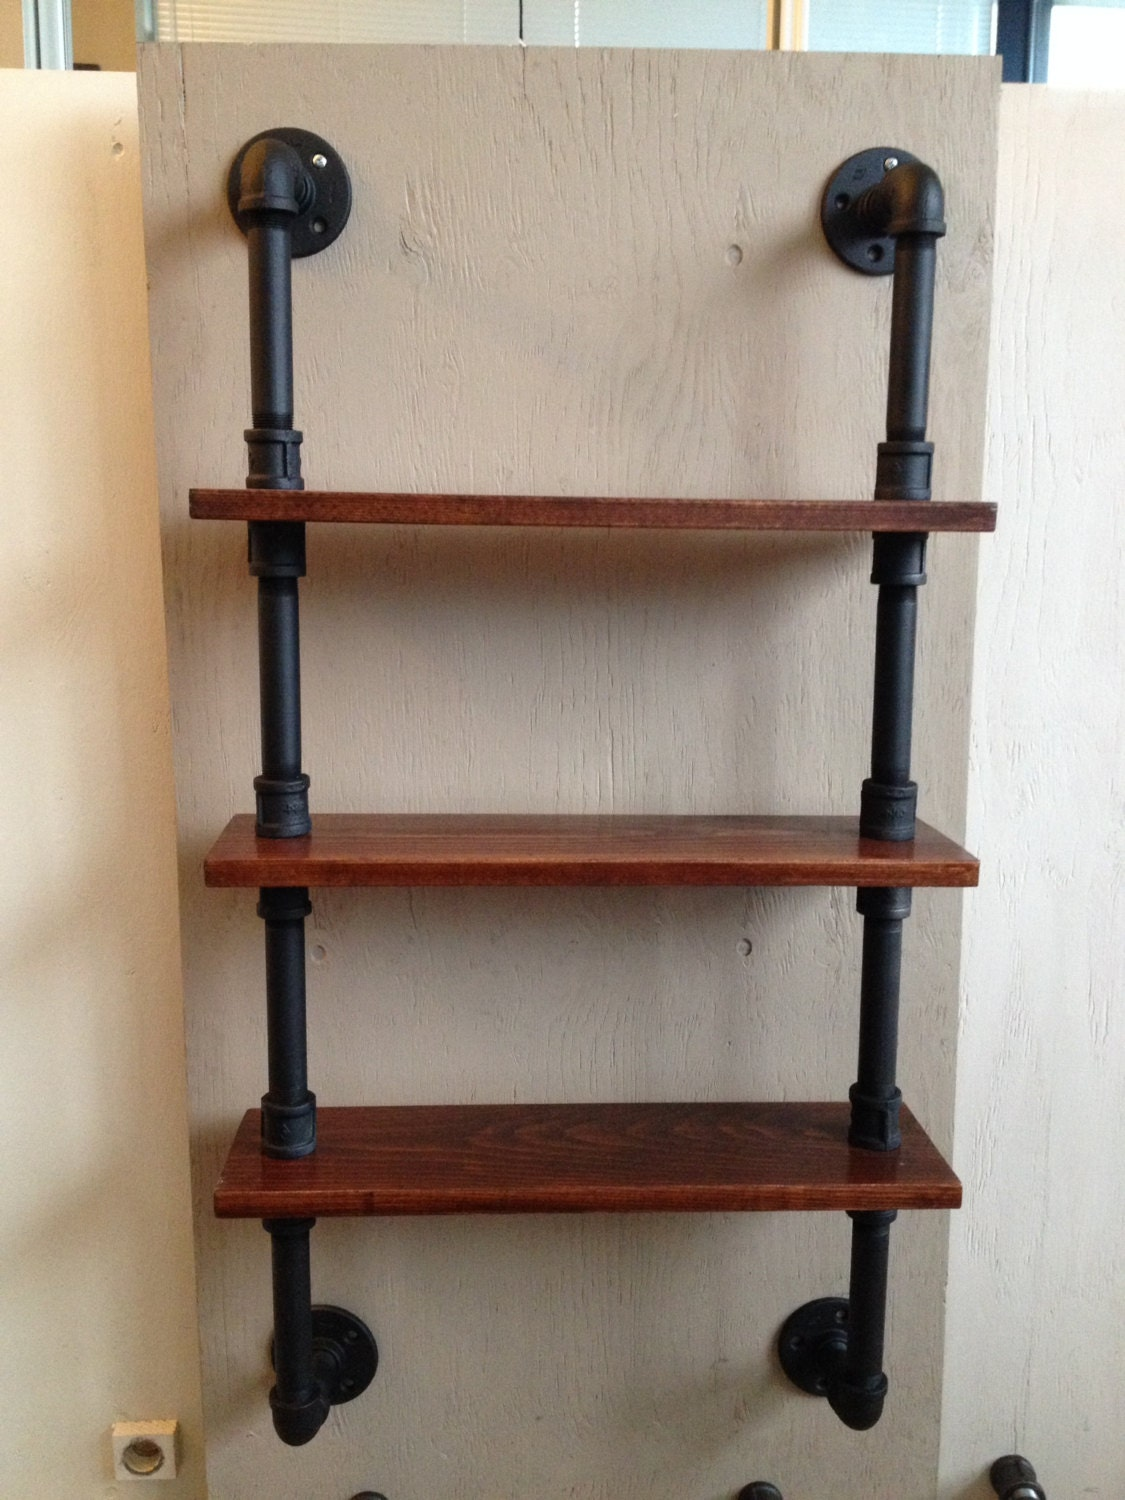 Pipe Shelf with 3 wood shelves by IndustrialPipeDesign on Etsy